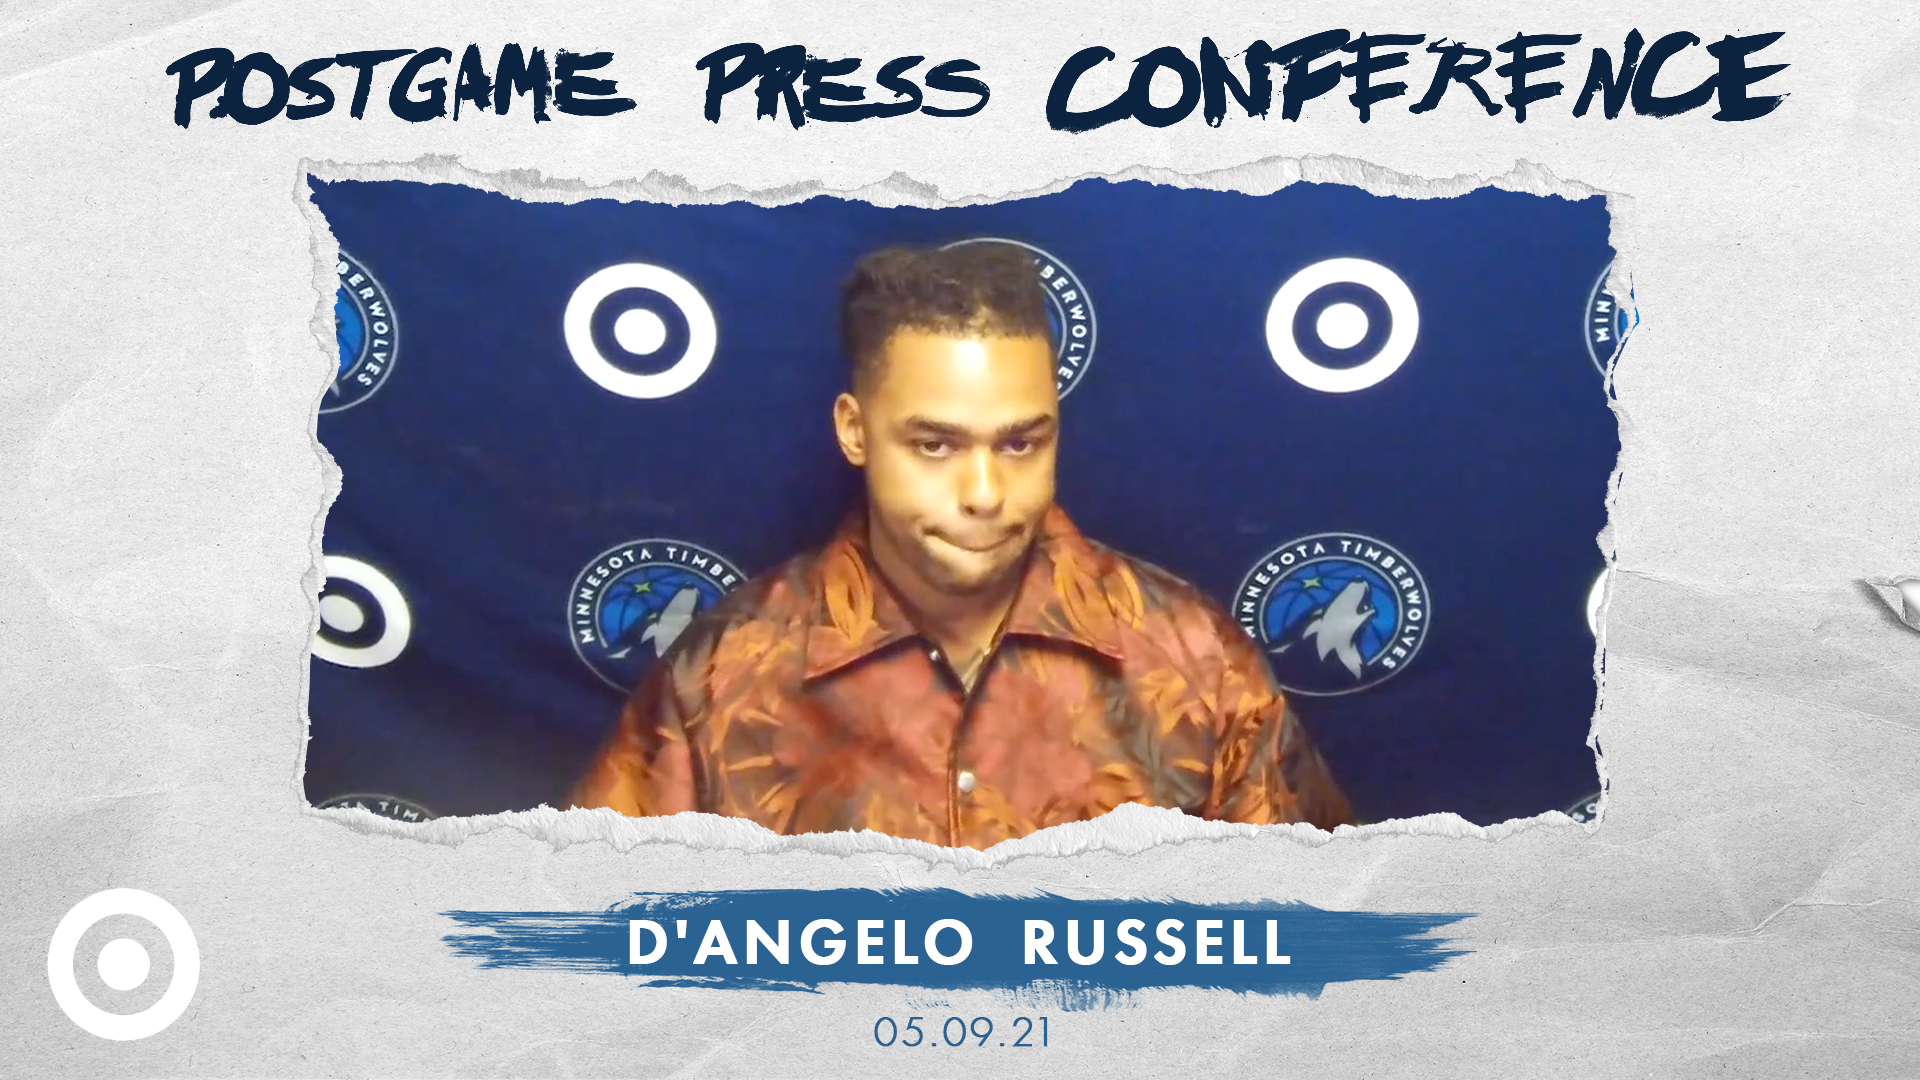 D'Angelo Russell Postgame Press Conference - May 9, 2021